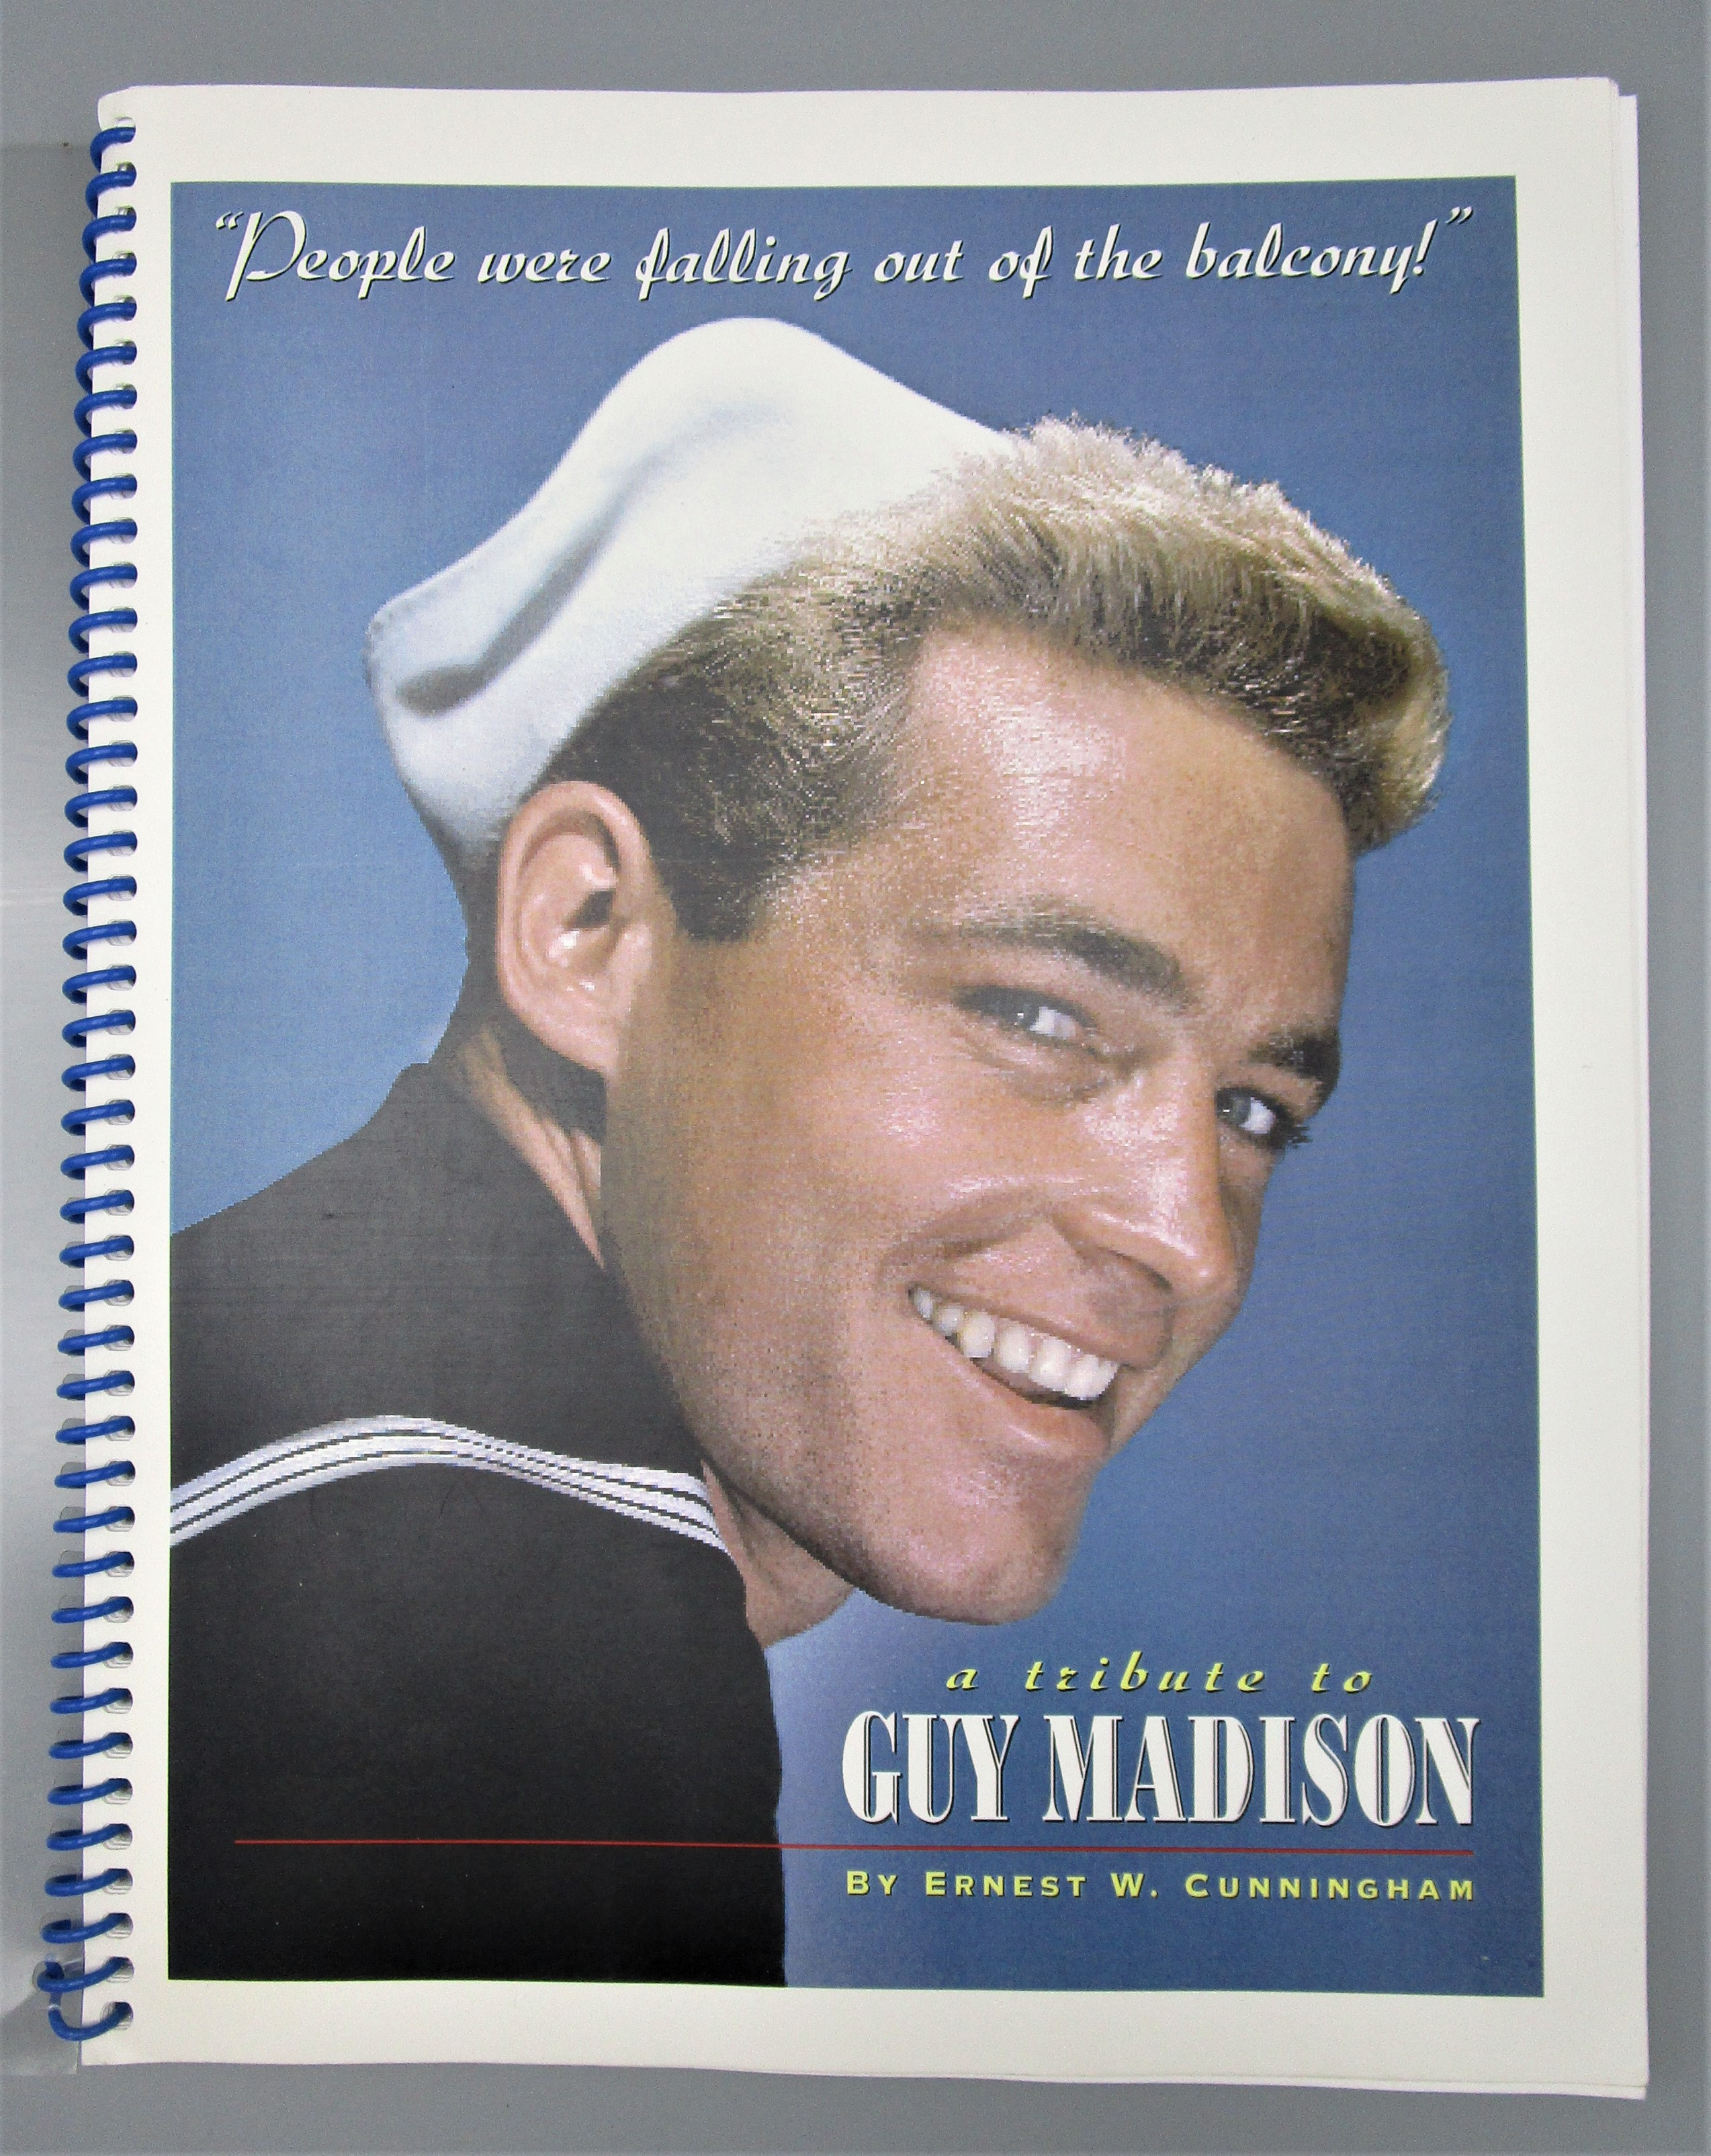 PEOPLE WERE FALLING OUT OF THE BALCONY! A TRIBUTE TO GUY MADISON, by Ernest W. Cunningham - 2000